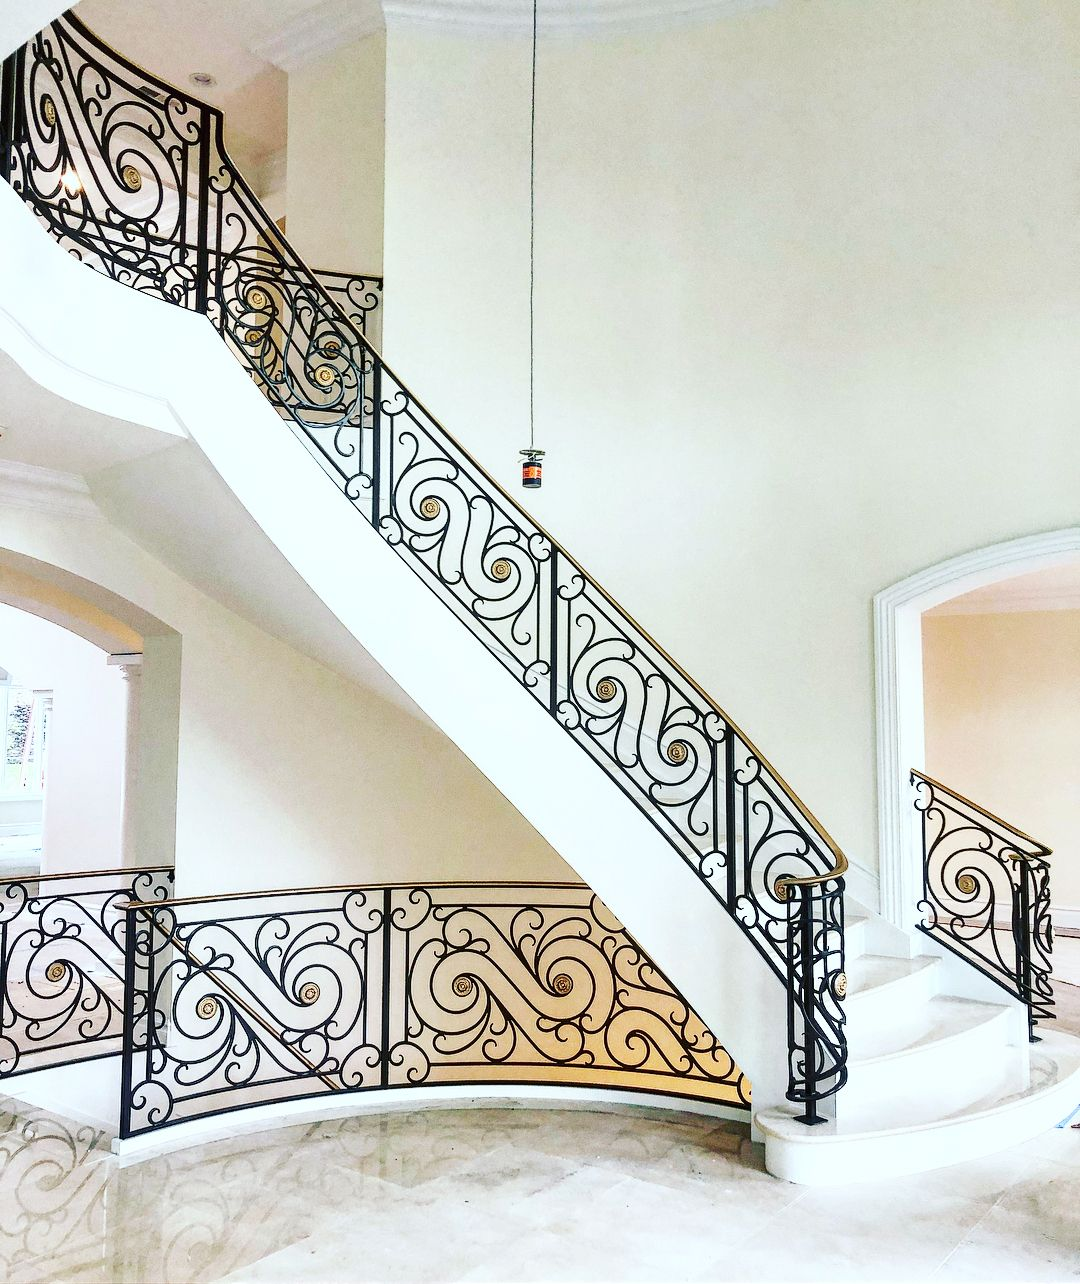 Grand Interior Iron Scroll Railing With Gold Painted Handrail And Center Medallions Ir Staircase Interior Design Wrought Iron Staircase Wrought Iron Stairs